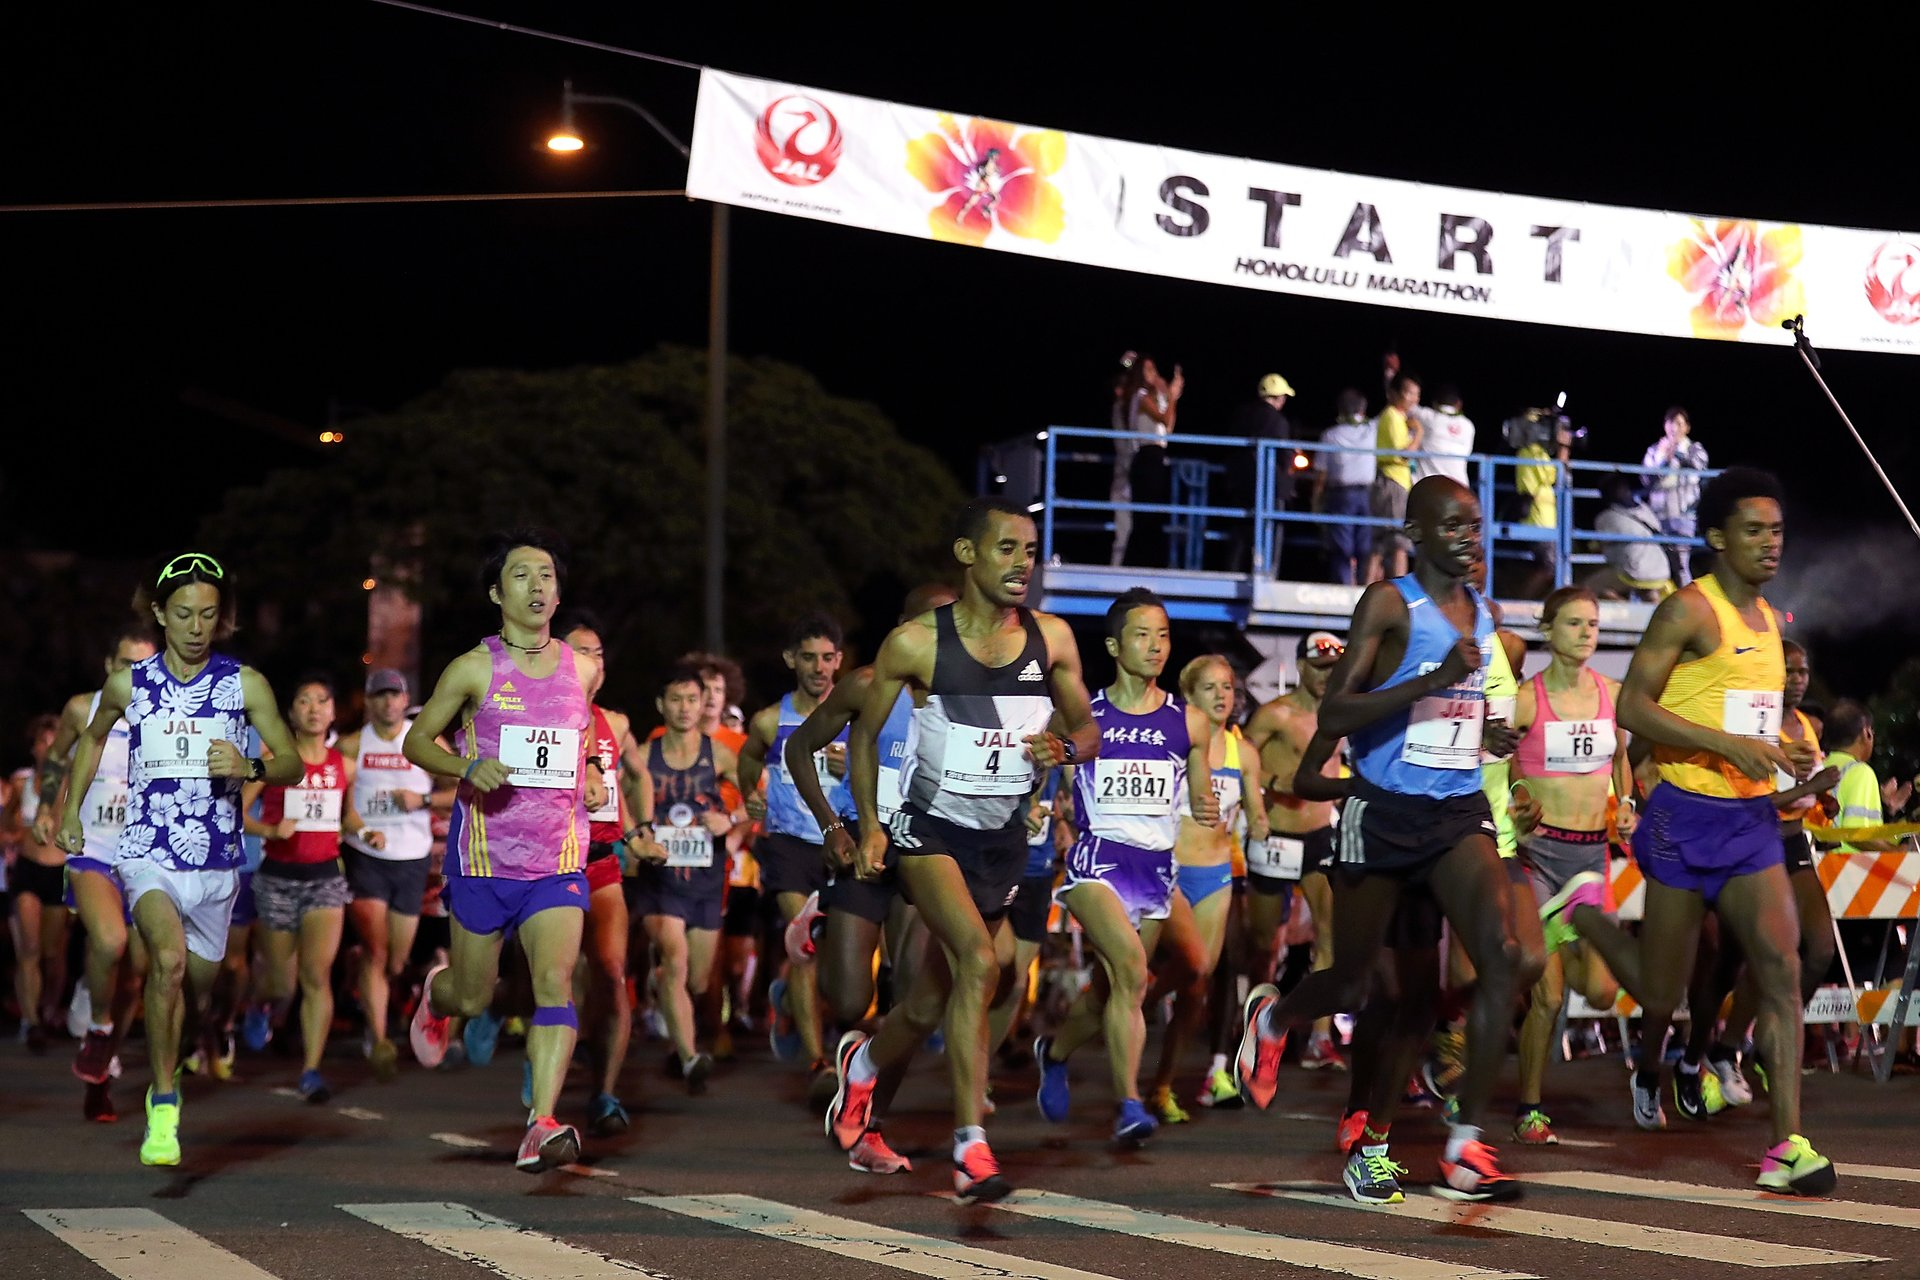 Honolulu Marathon in Hawaii - Best Season 2019